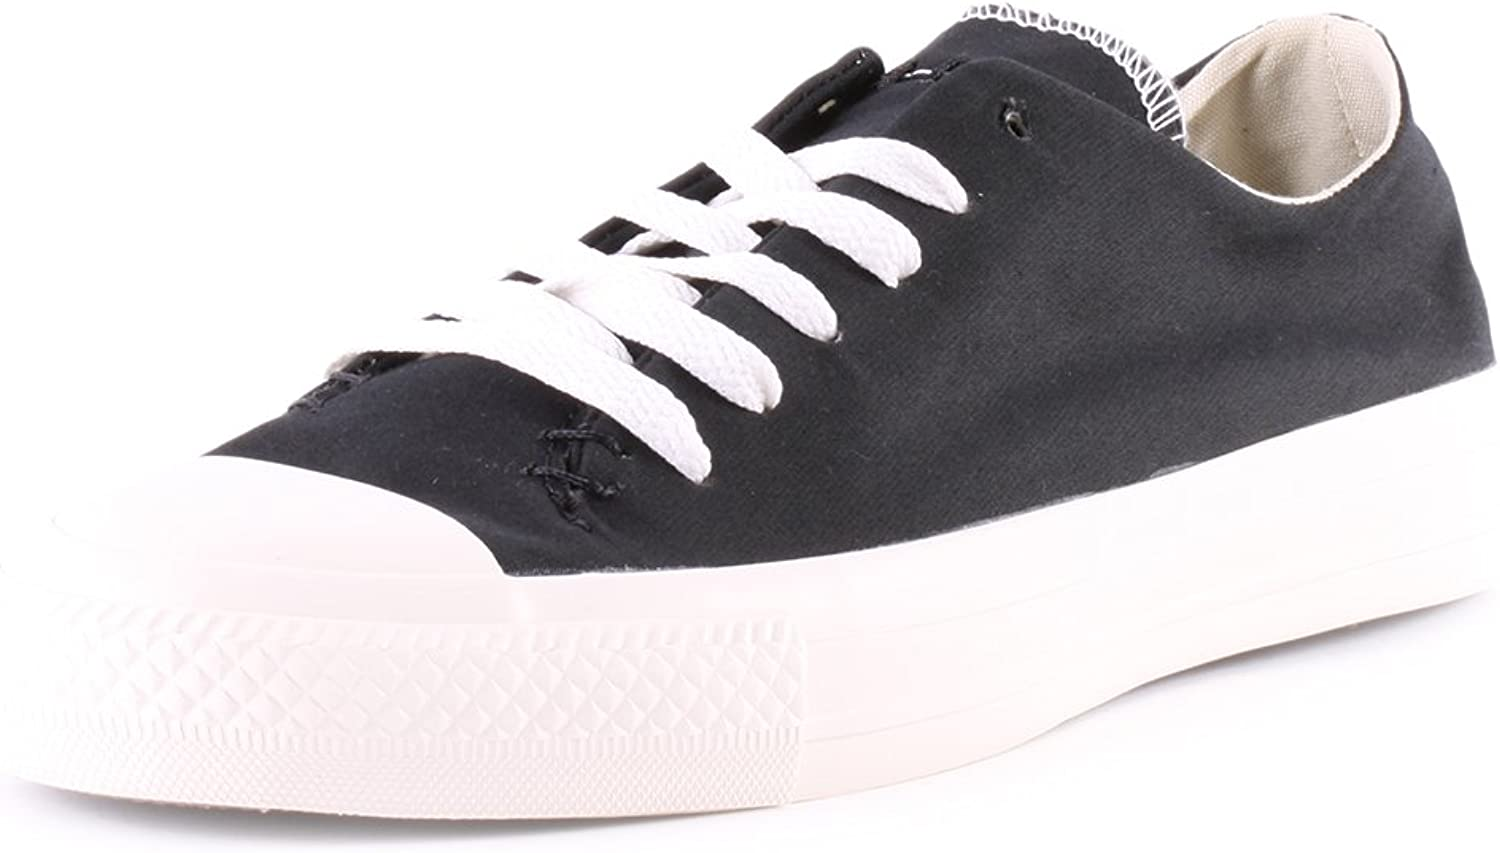 Converse Alll Star Sneakers black shoes Unisex impermeabili Water Resistent